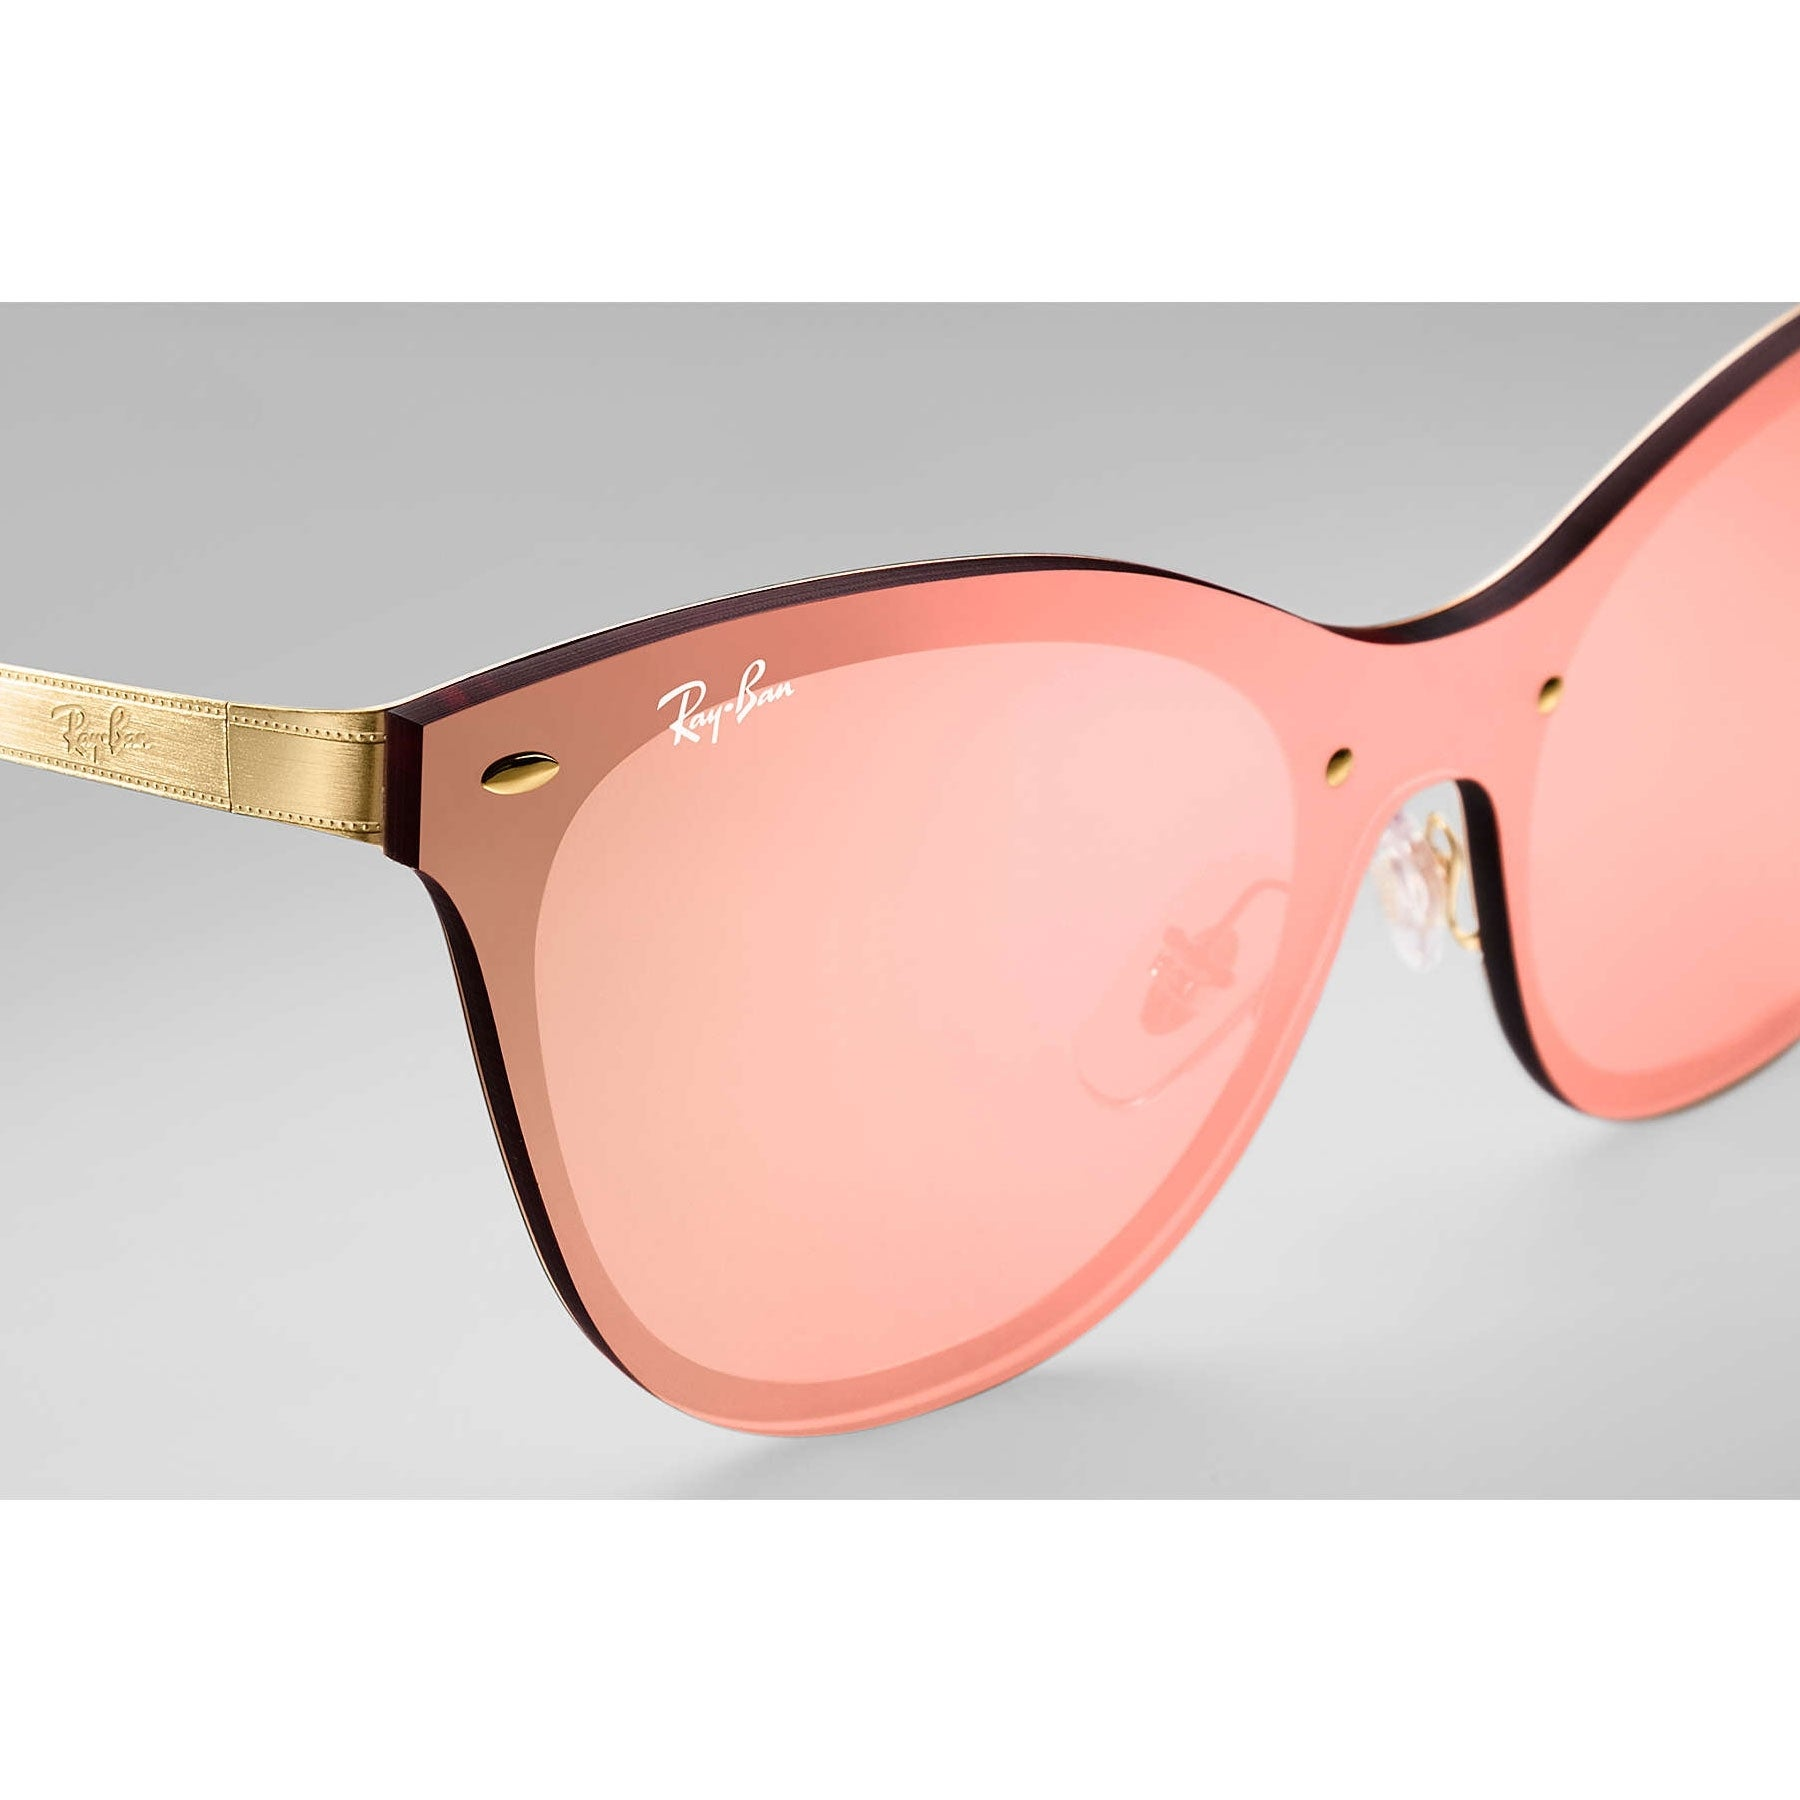 c3f6c928868 Shop Ray-Ban RB3580N Blaze Cat Eye Sunglasses Gold  Pink Mirror 43mm - Free  Shipping Today - Overstock - 20603390